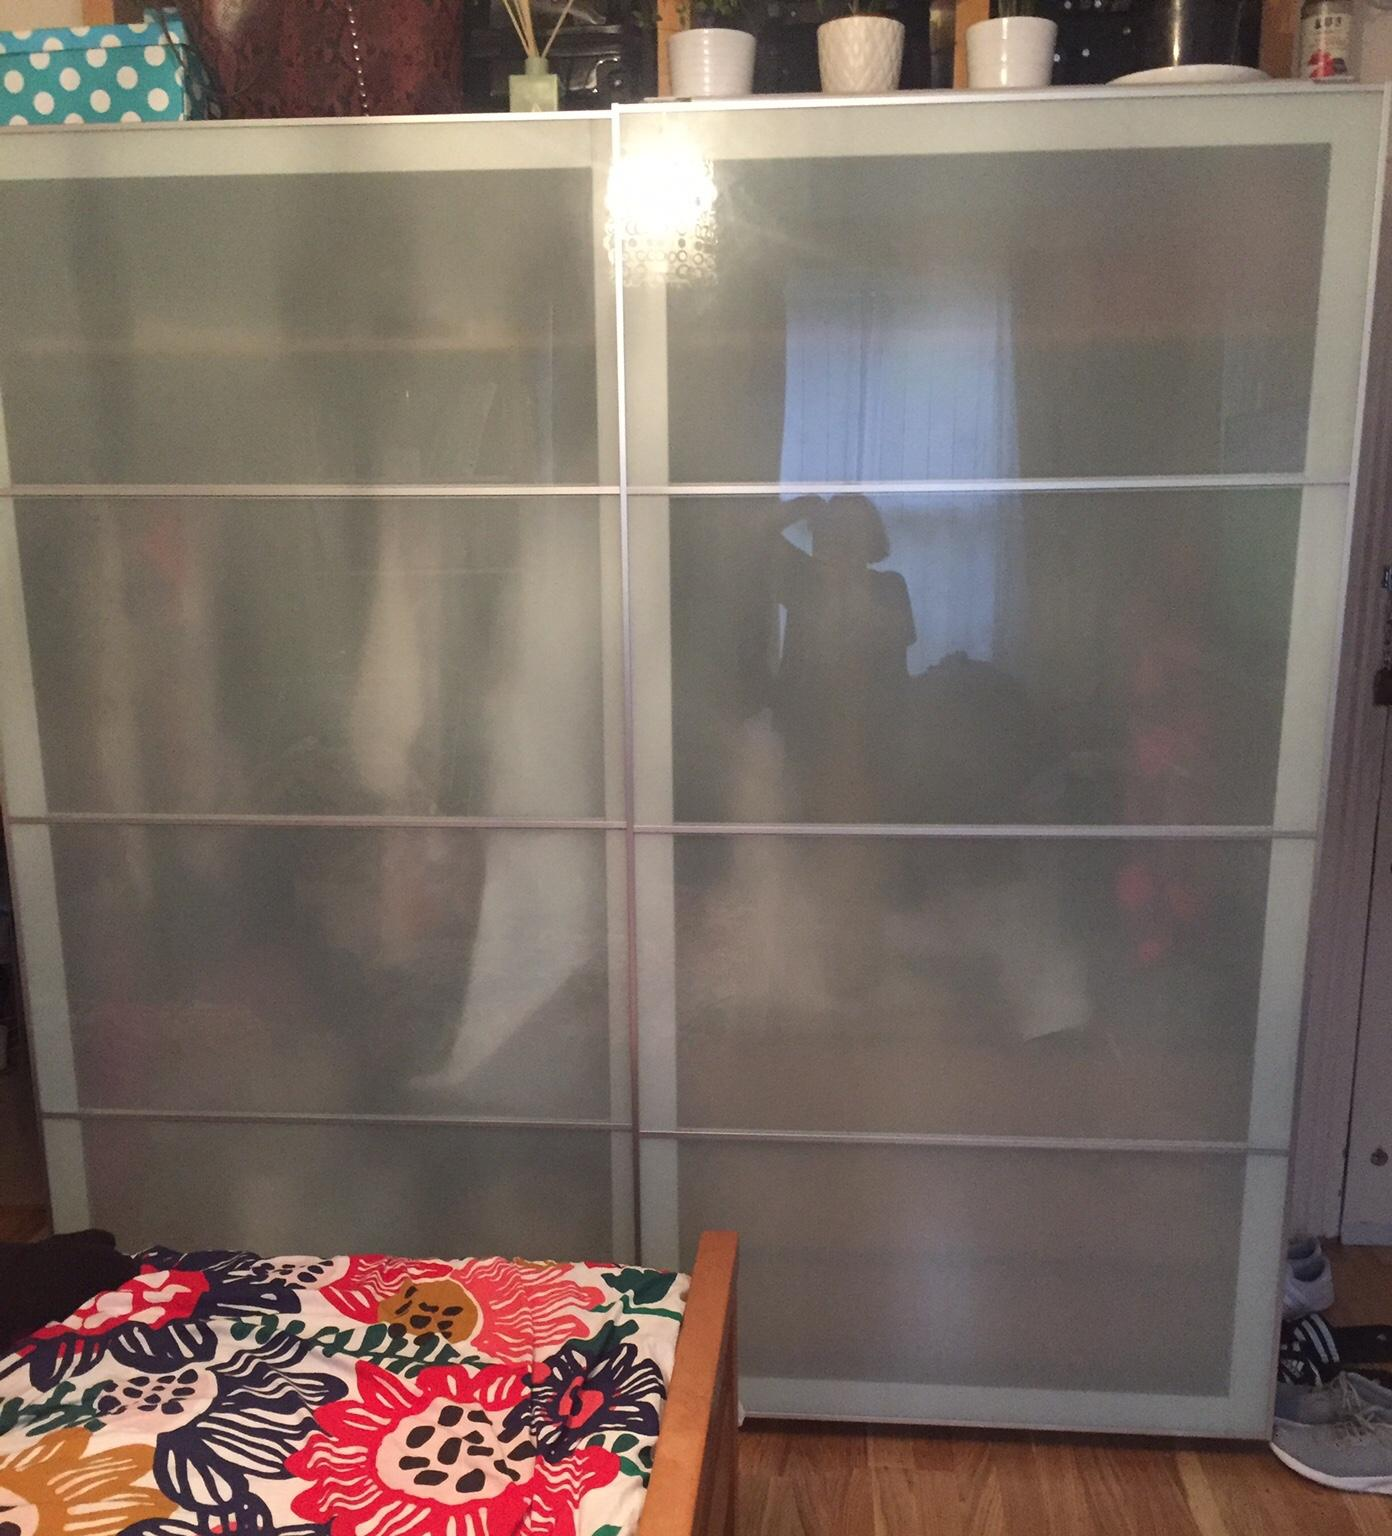 Ikea Pax Wardrobe frosted glass sliding doors #1 for sale